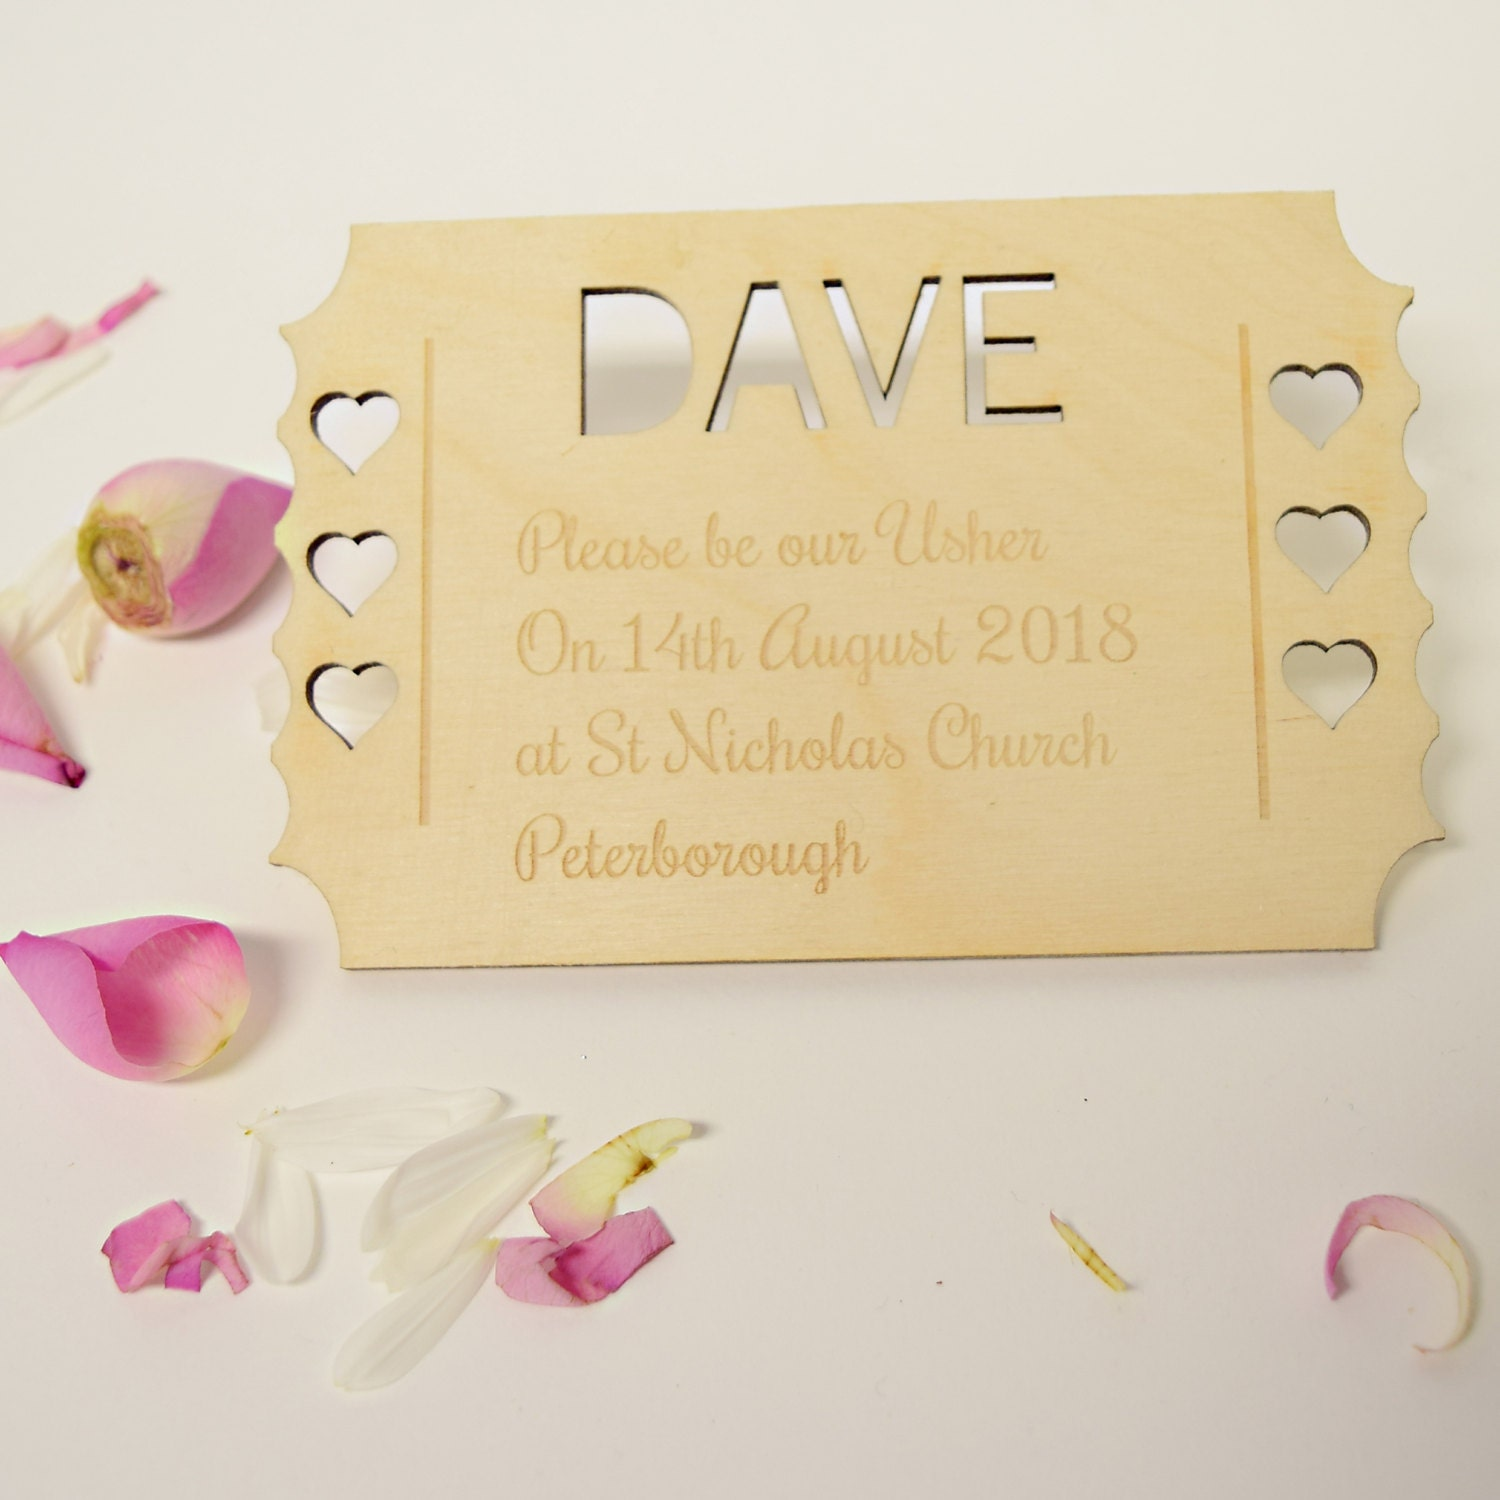 Personalised Usher Invitation  Be Our Usher Invitation  Wooden Usher Invite  Laser Cut Ticket Usher Keepsake